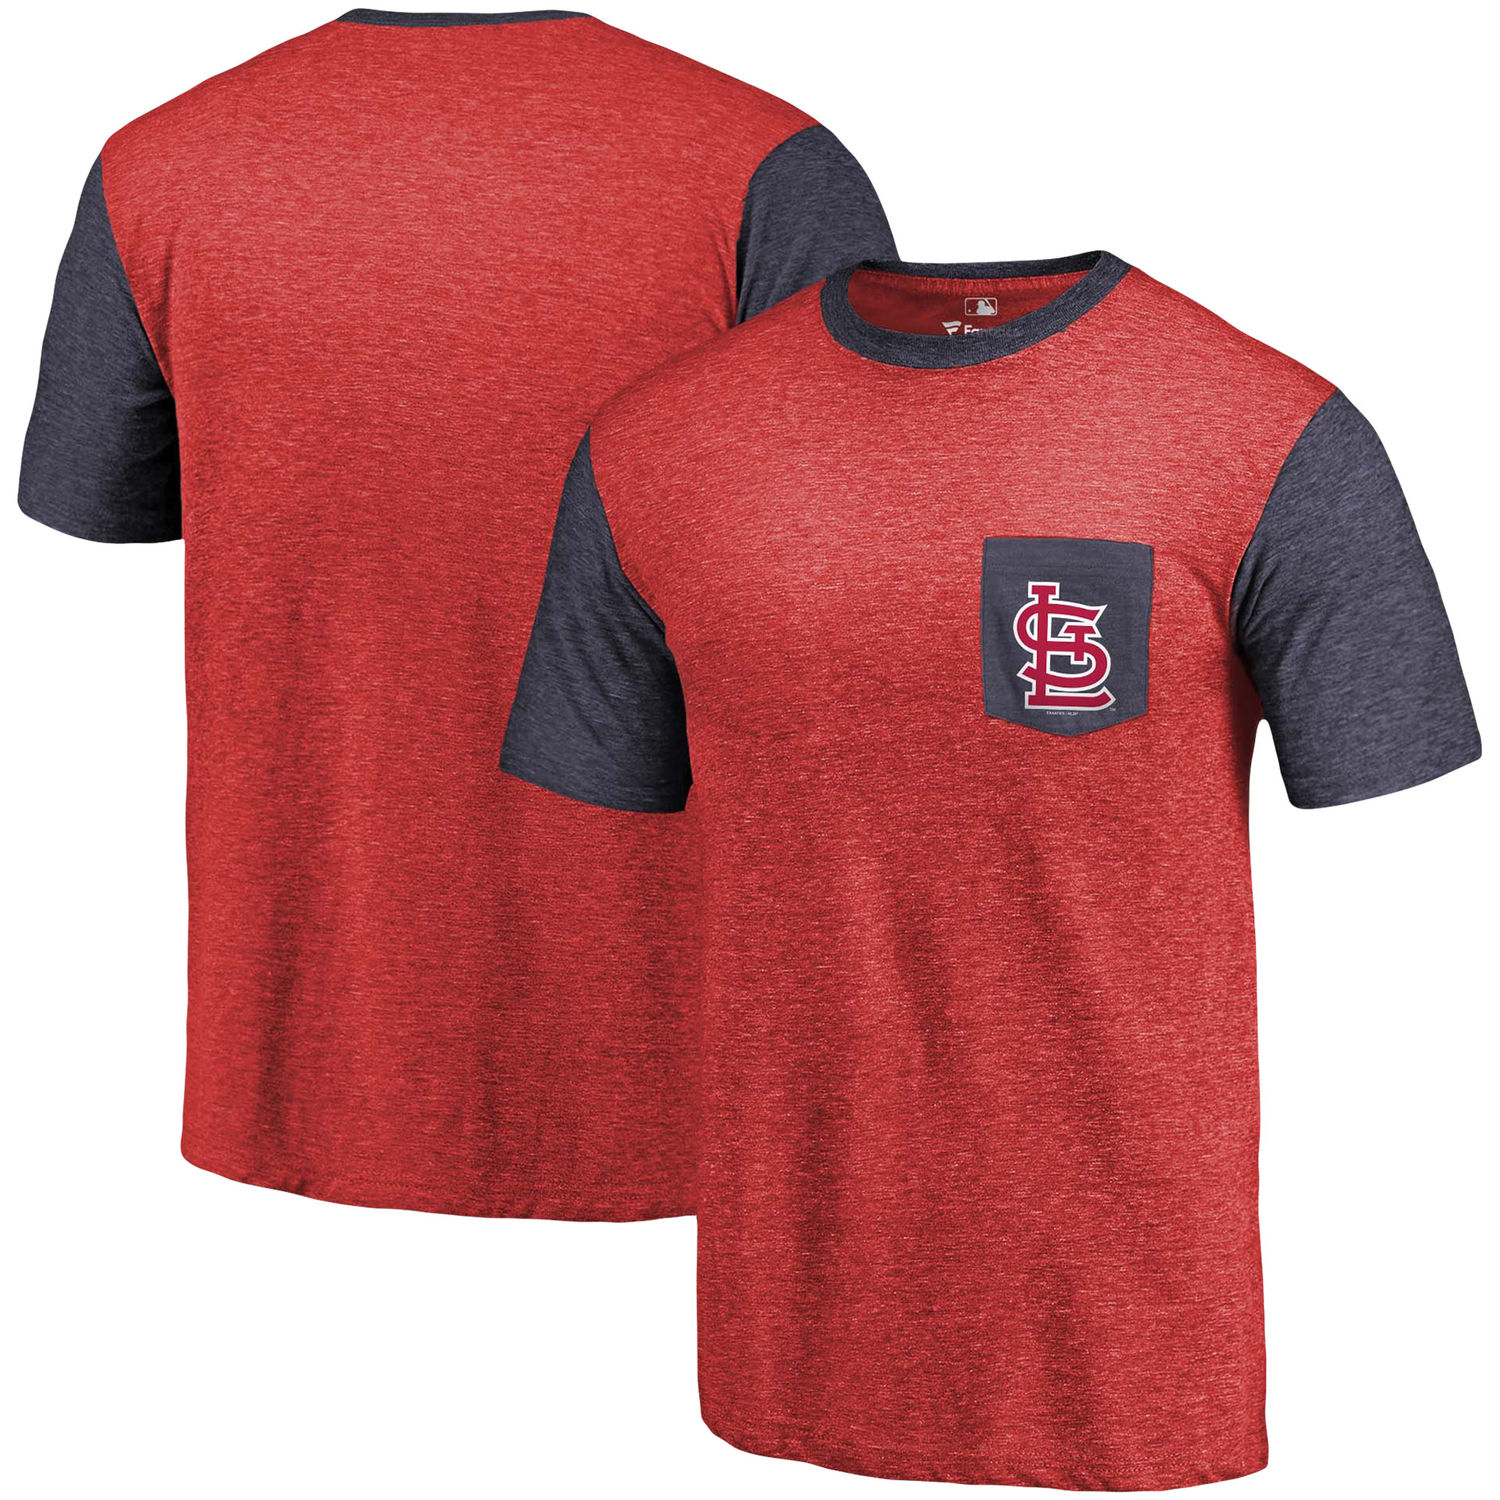 Men's St. Louis Cardinals Fanatics Branded Red-Navy Refresh Pocket T-Shirt